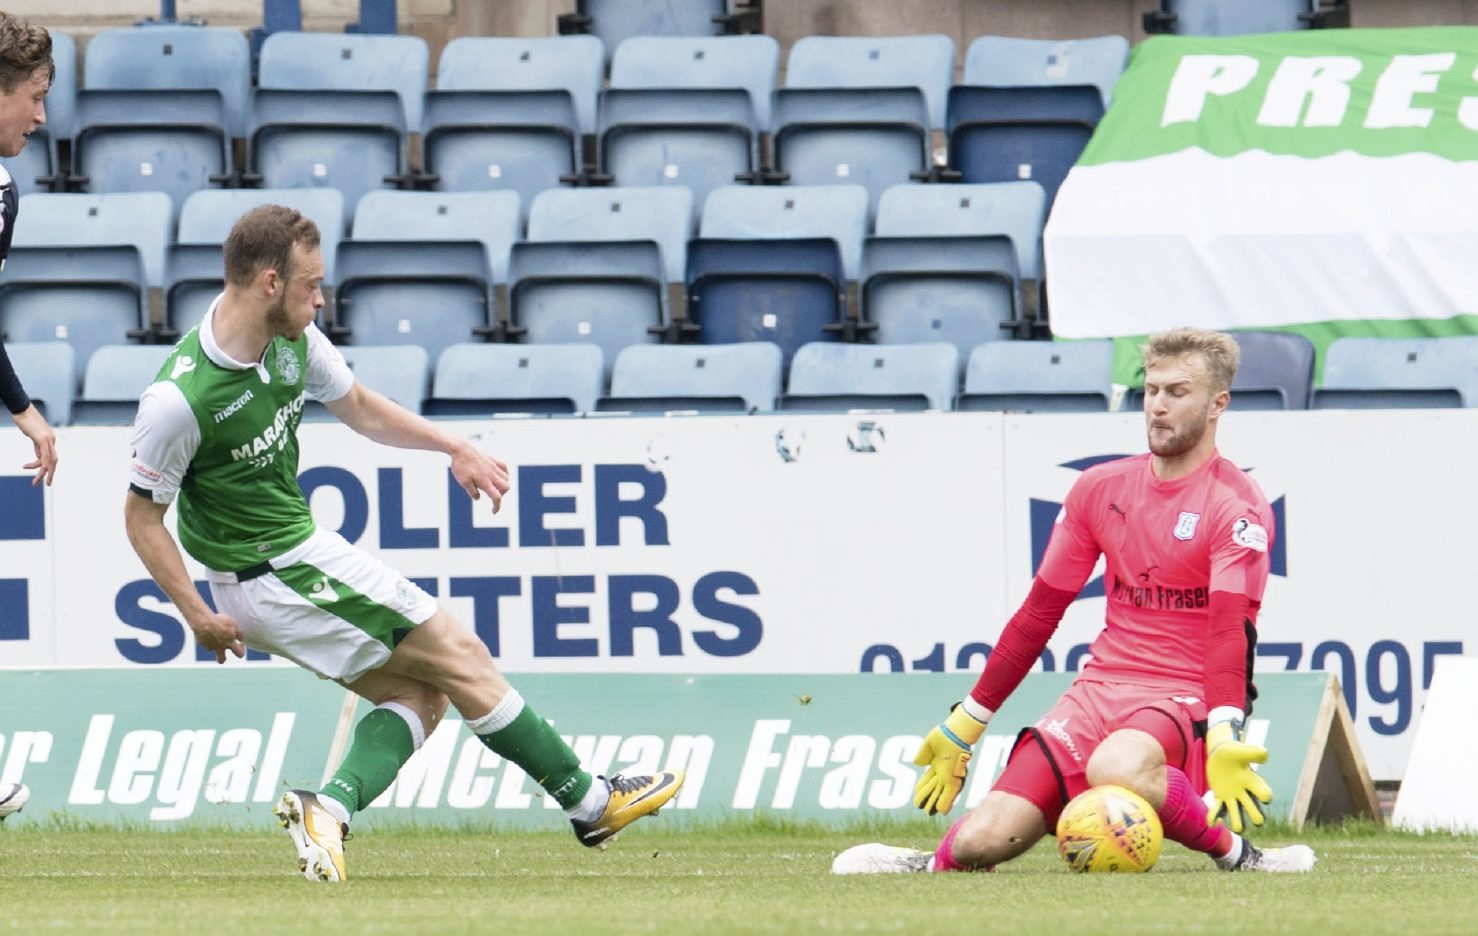 Scott Bain makes one of his many saves.